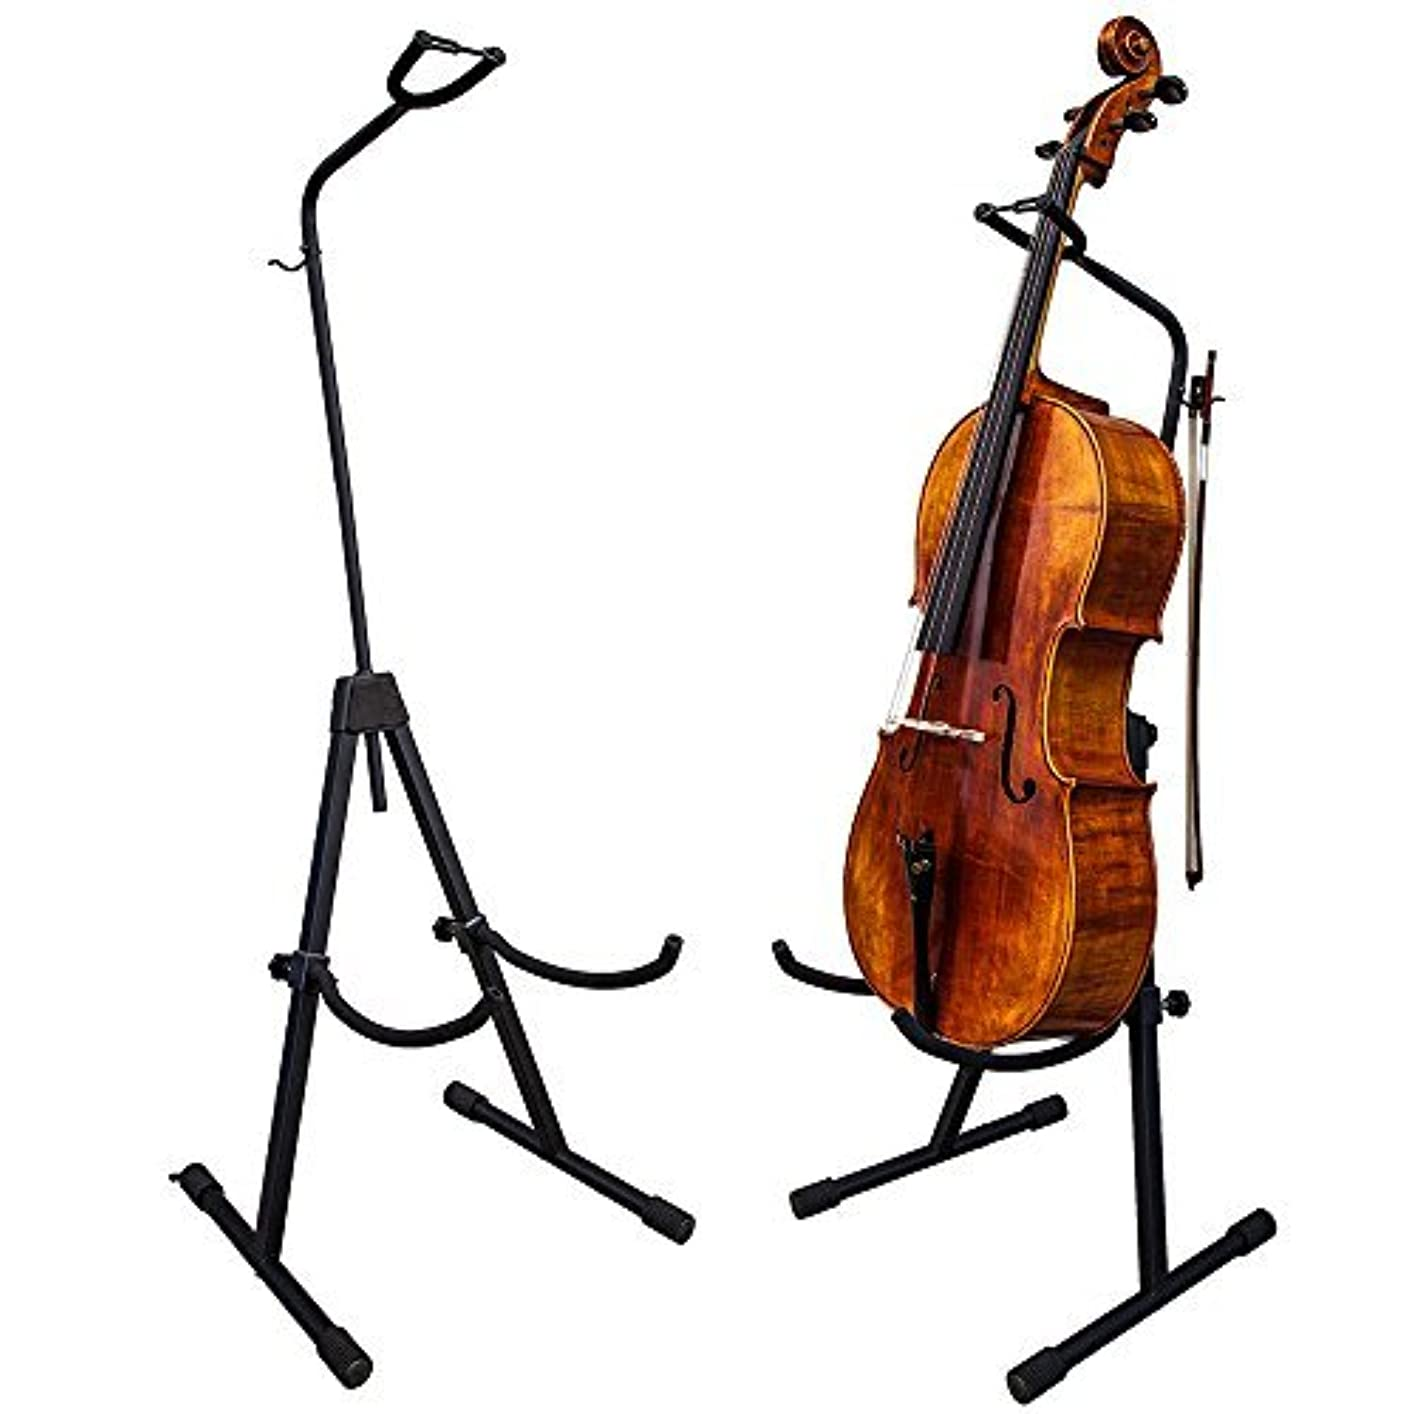 同様に前提実現可能PAITITI Adjustable Foldable Stand for Cello with Hook for Bow - Black [並行輸入品]